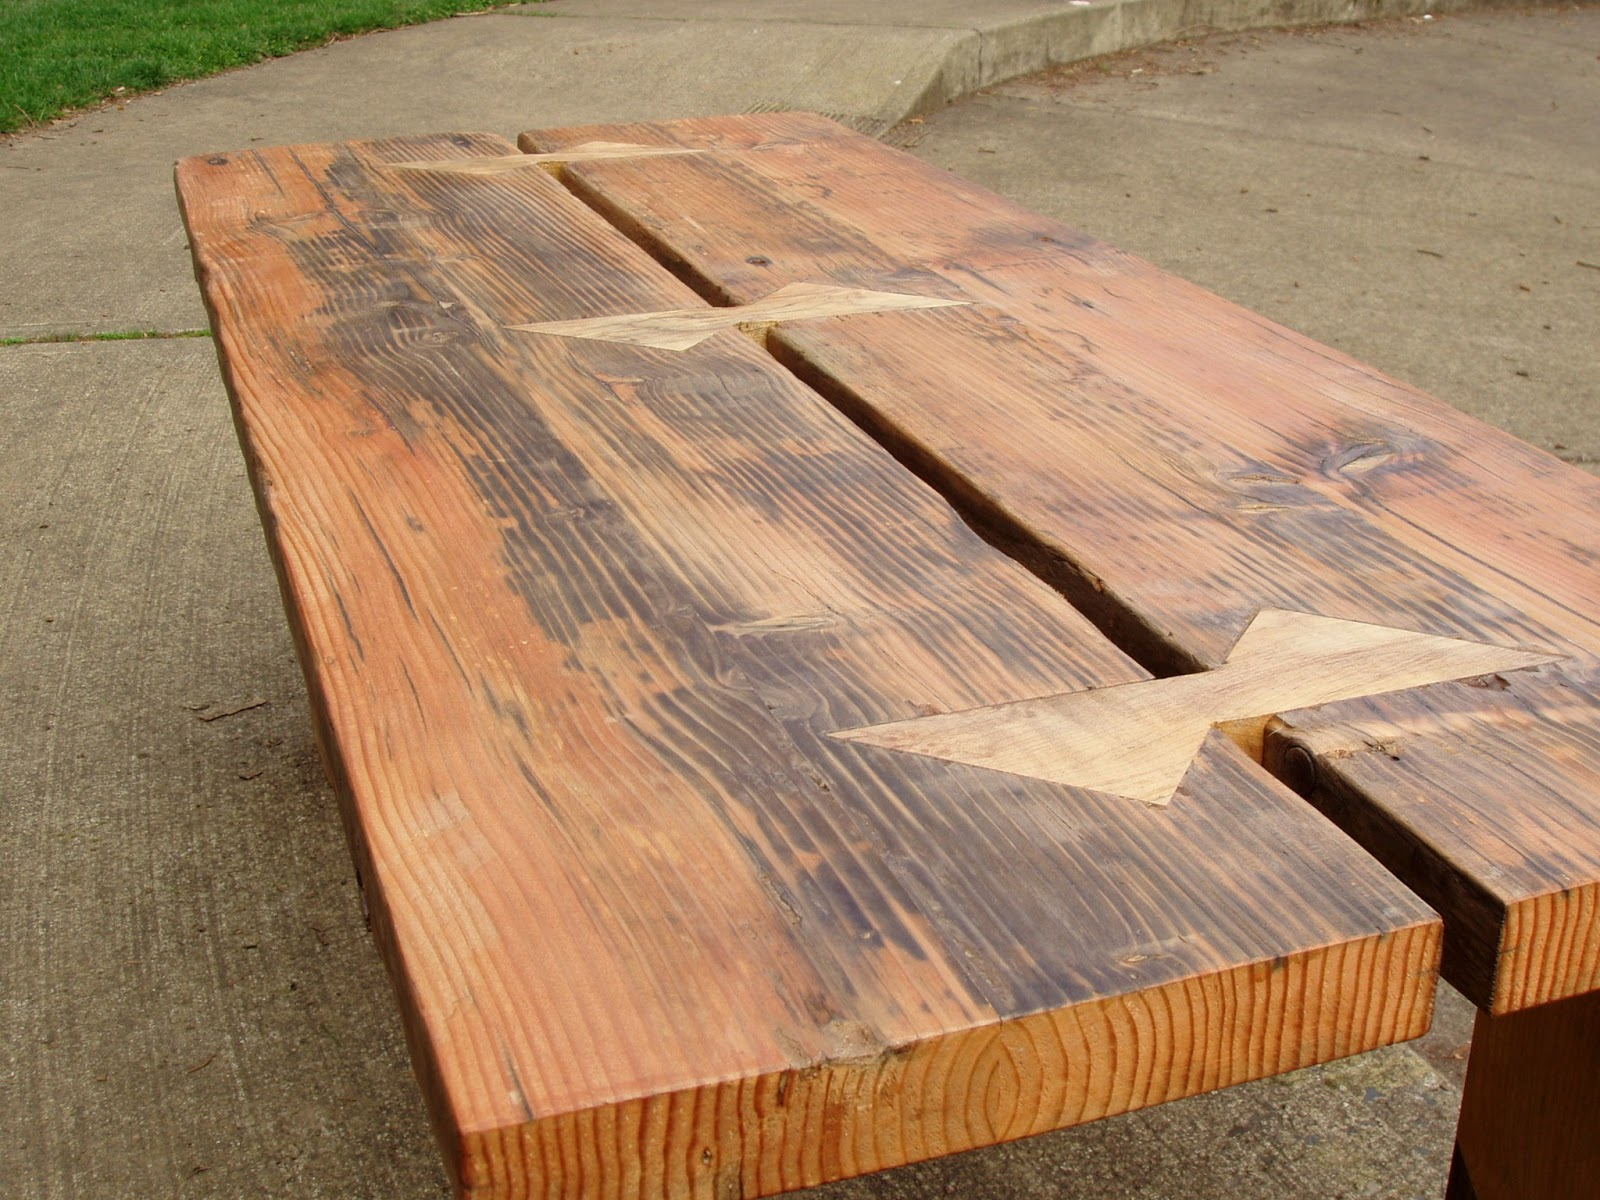 Driftedge Woodworking Reclaimed Wood Furniture